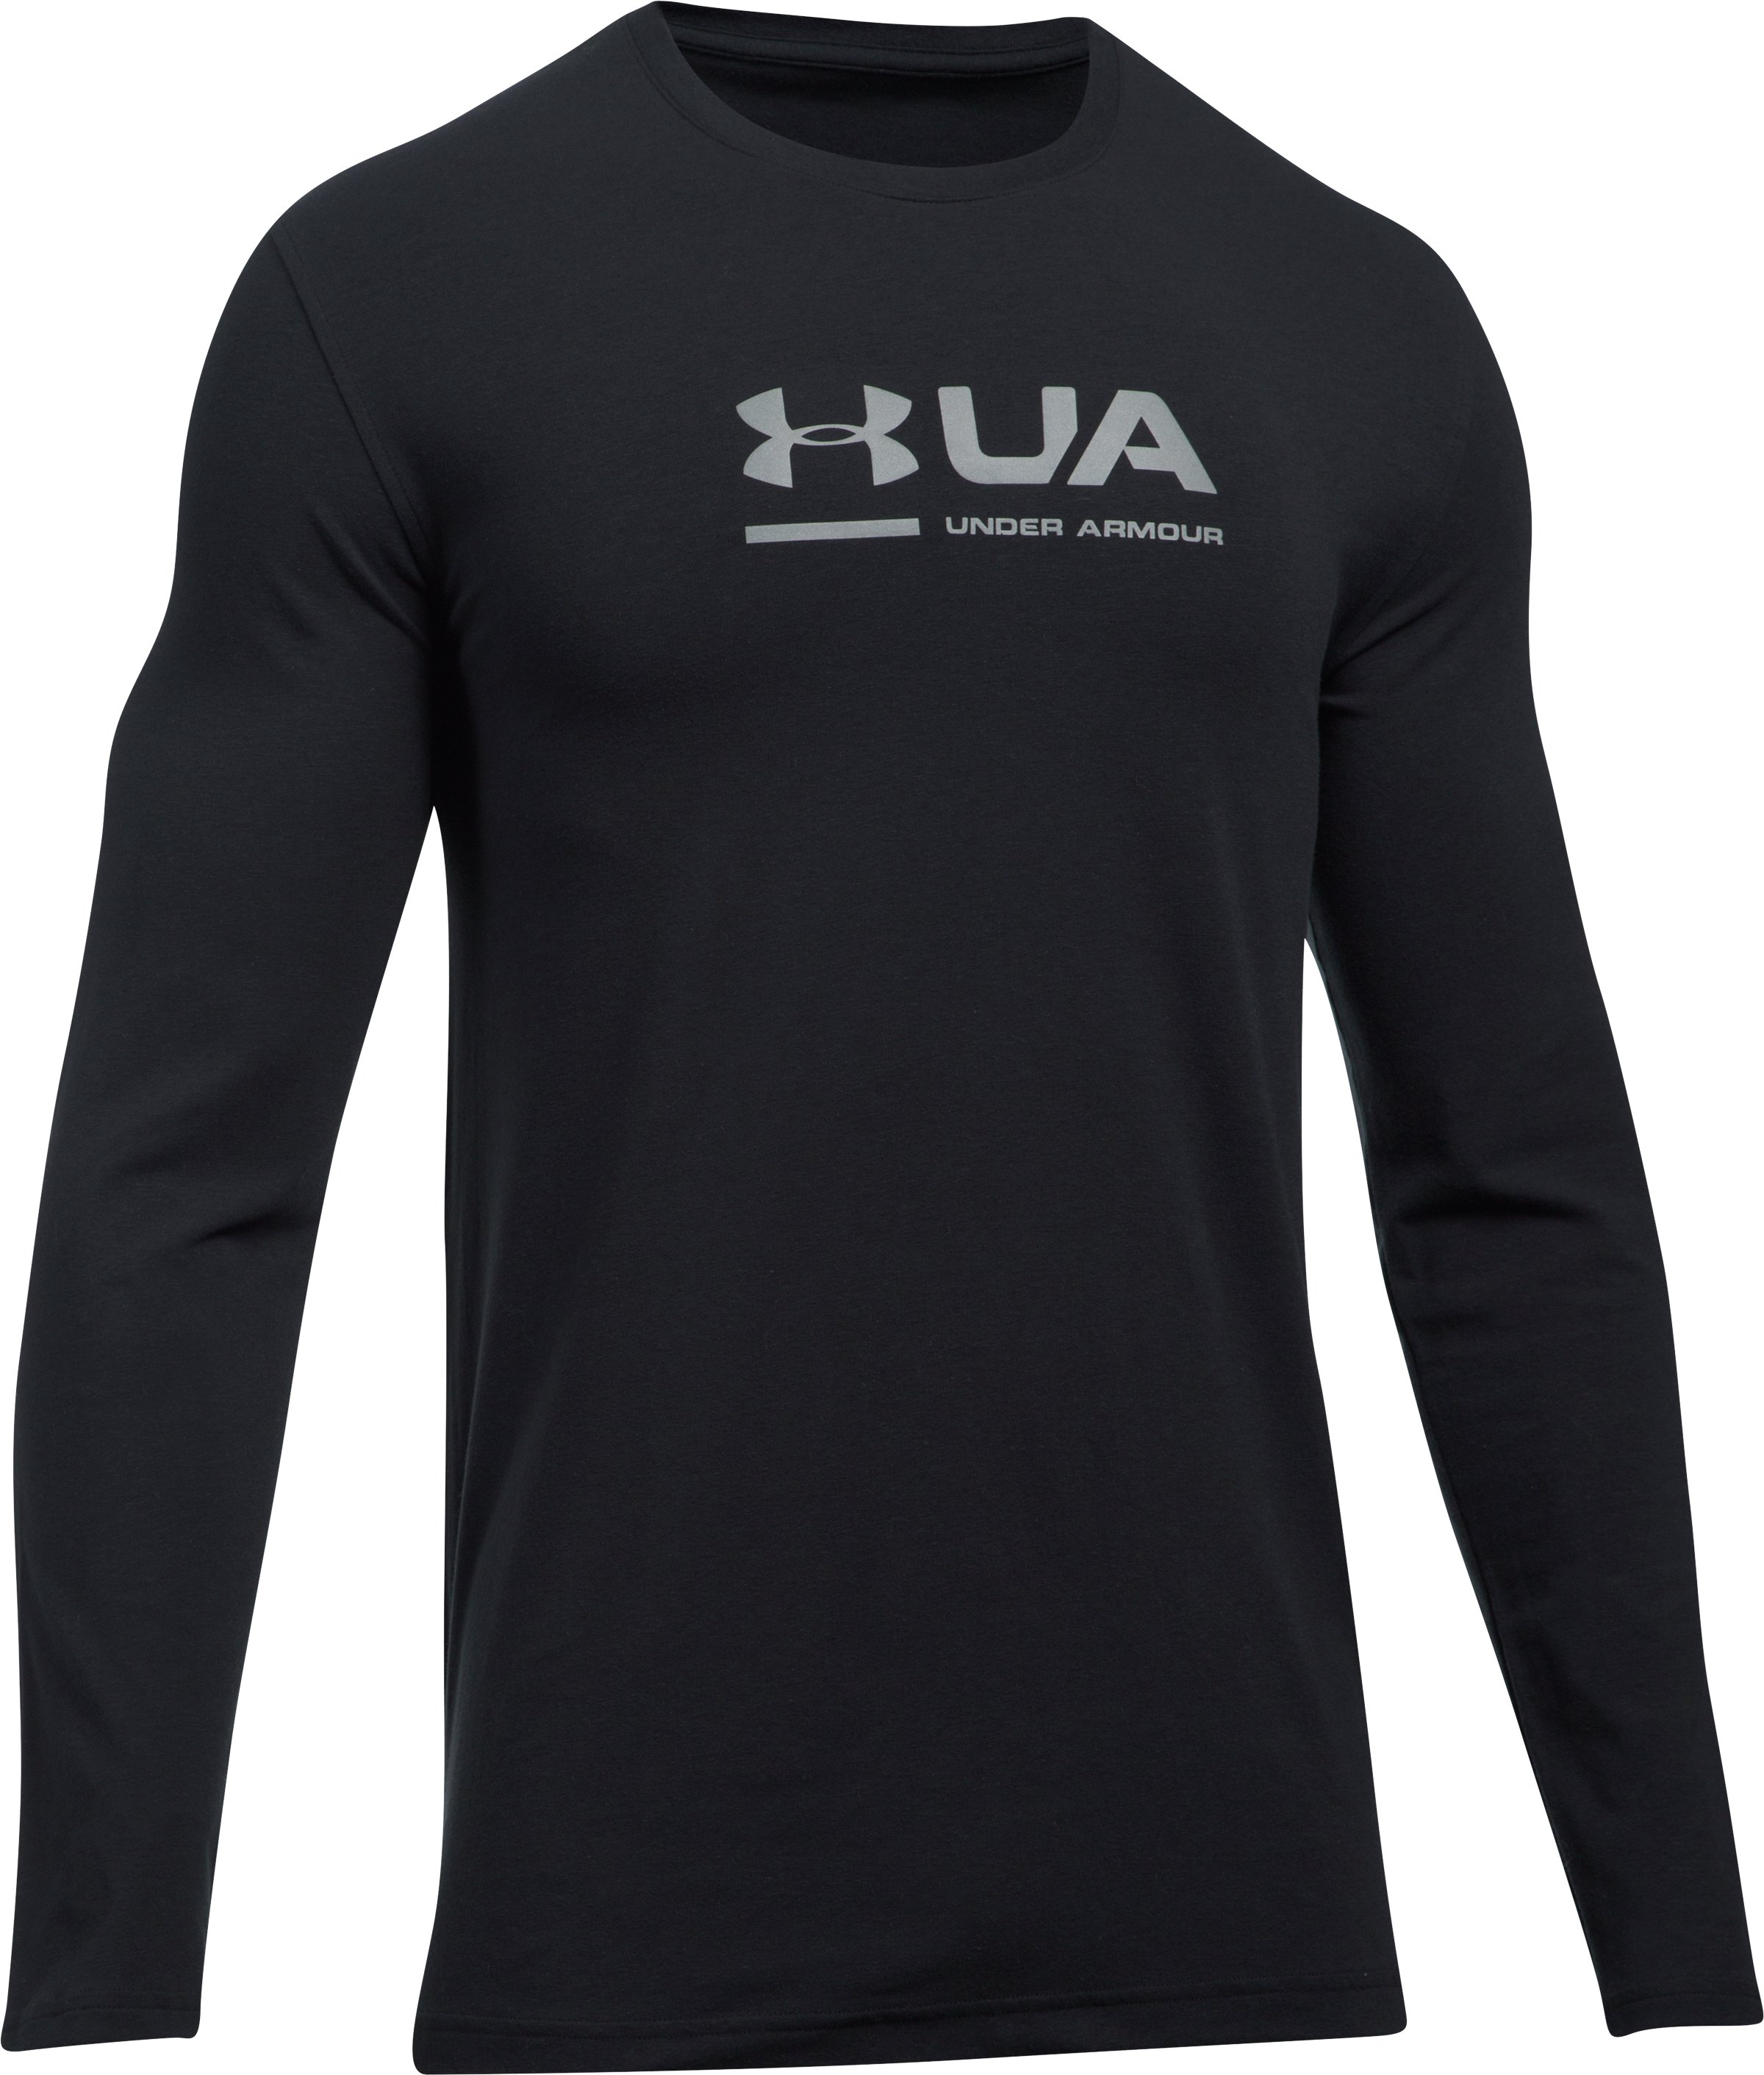 Men's UA Shift Center Chest Long Sleeve T-Shirt, Black , undefined